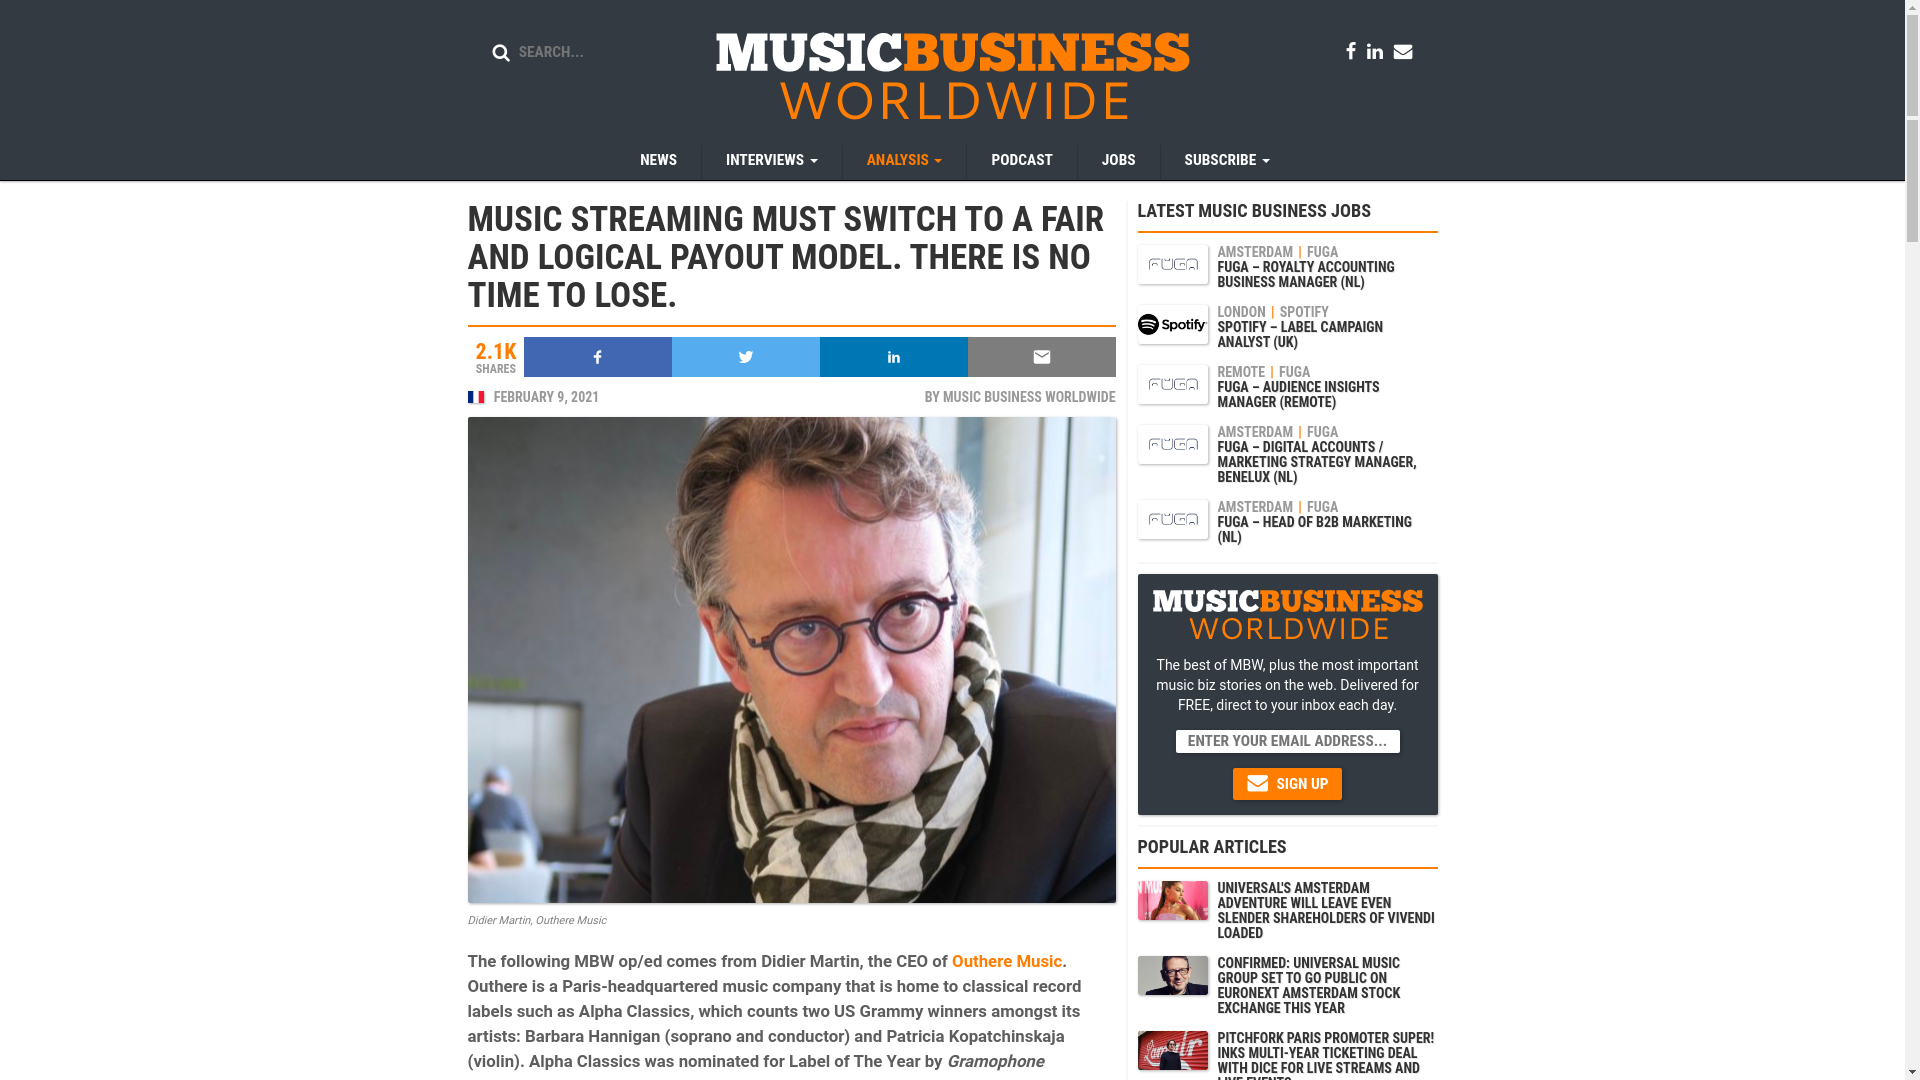 Fairness Rocks News MUSIC STREAMING MUST SWITCH TO A FAIR AND LOGICAL PAYOUT MODEL. THERE IS NO TIME TO LOSE.